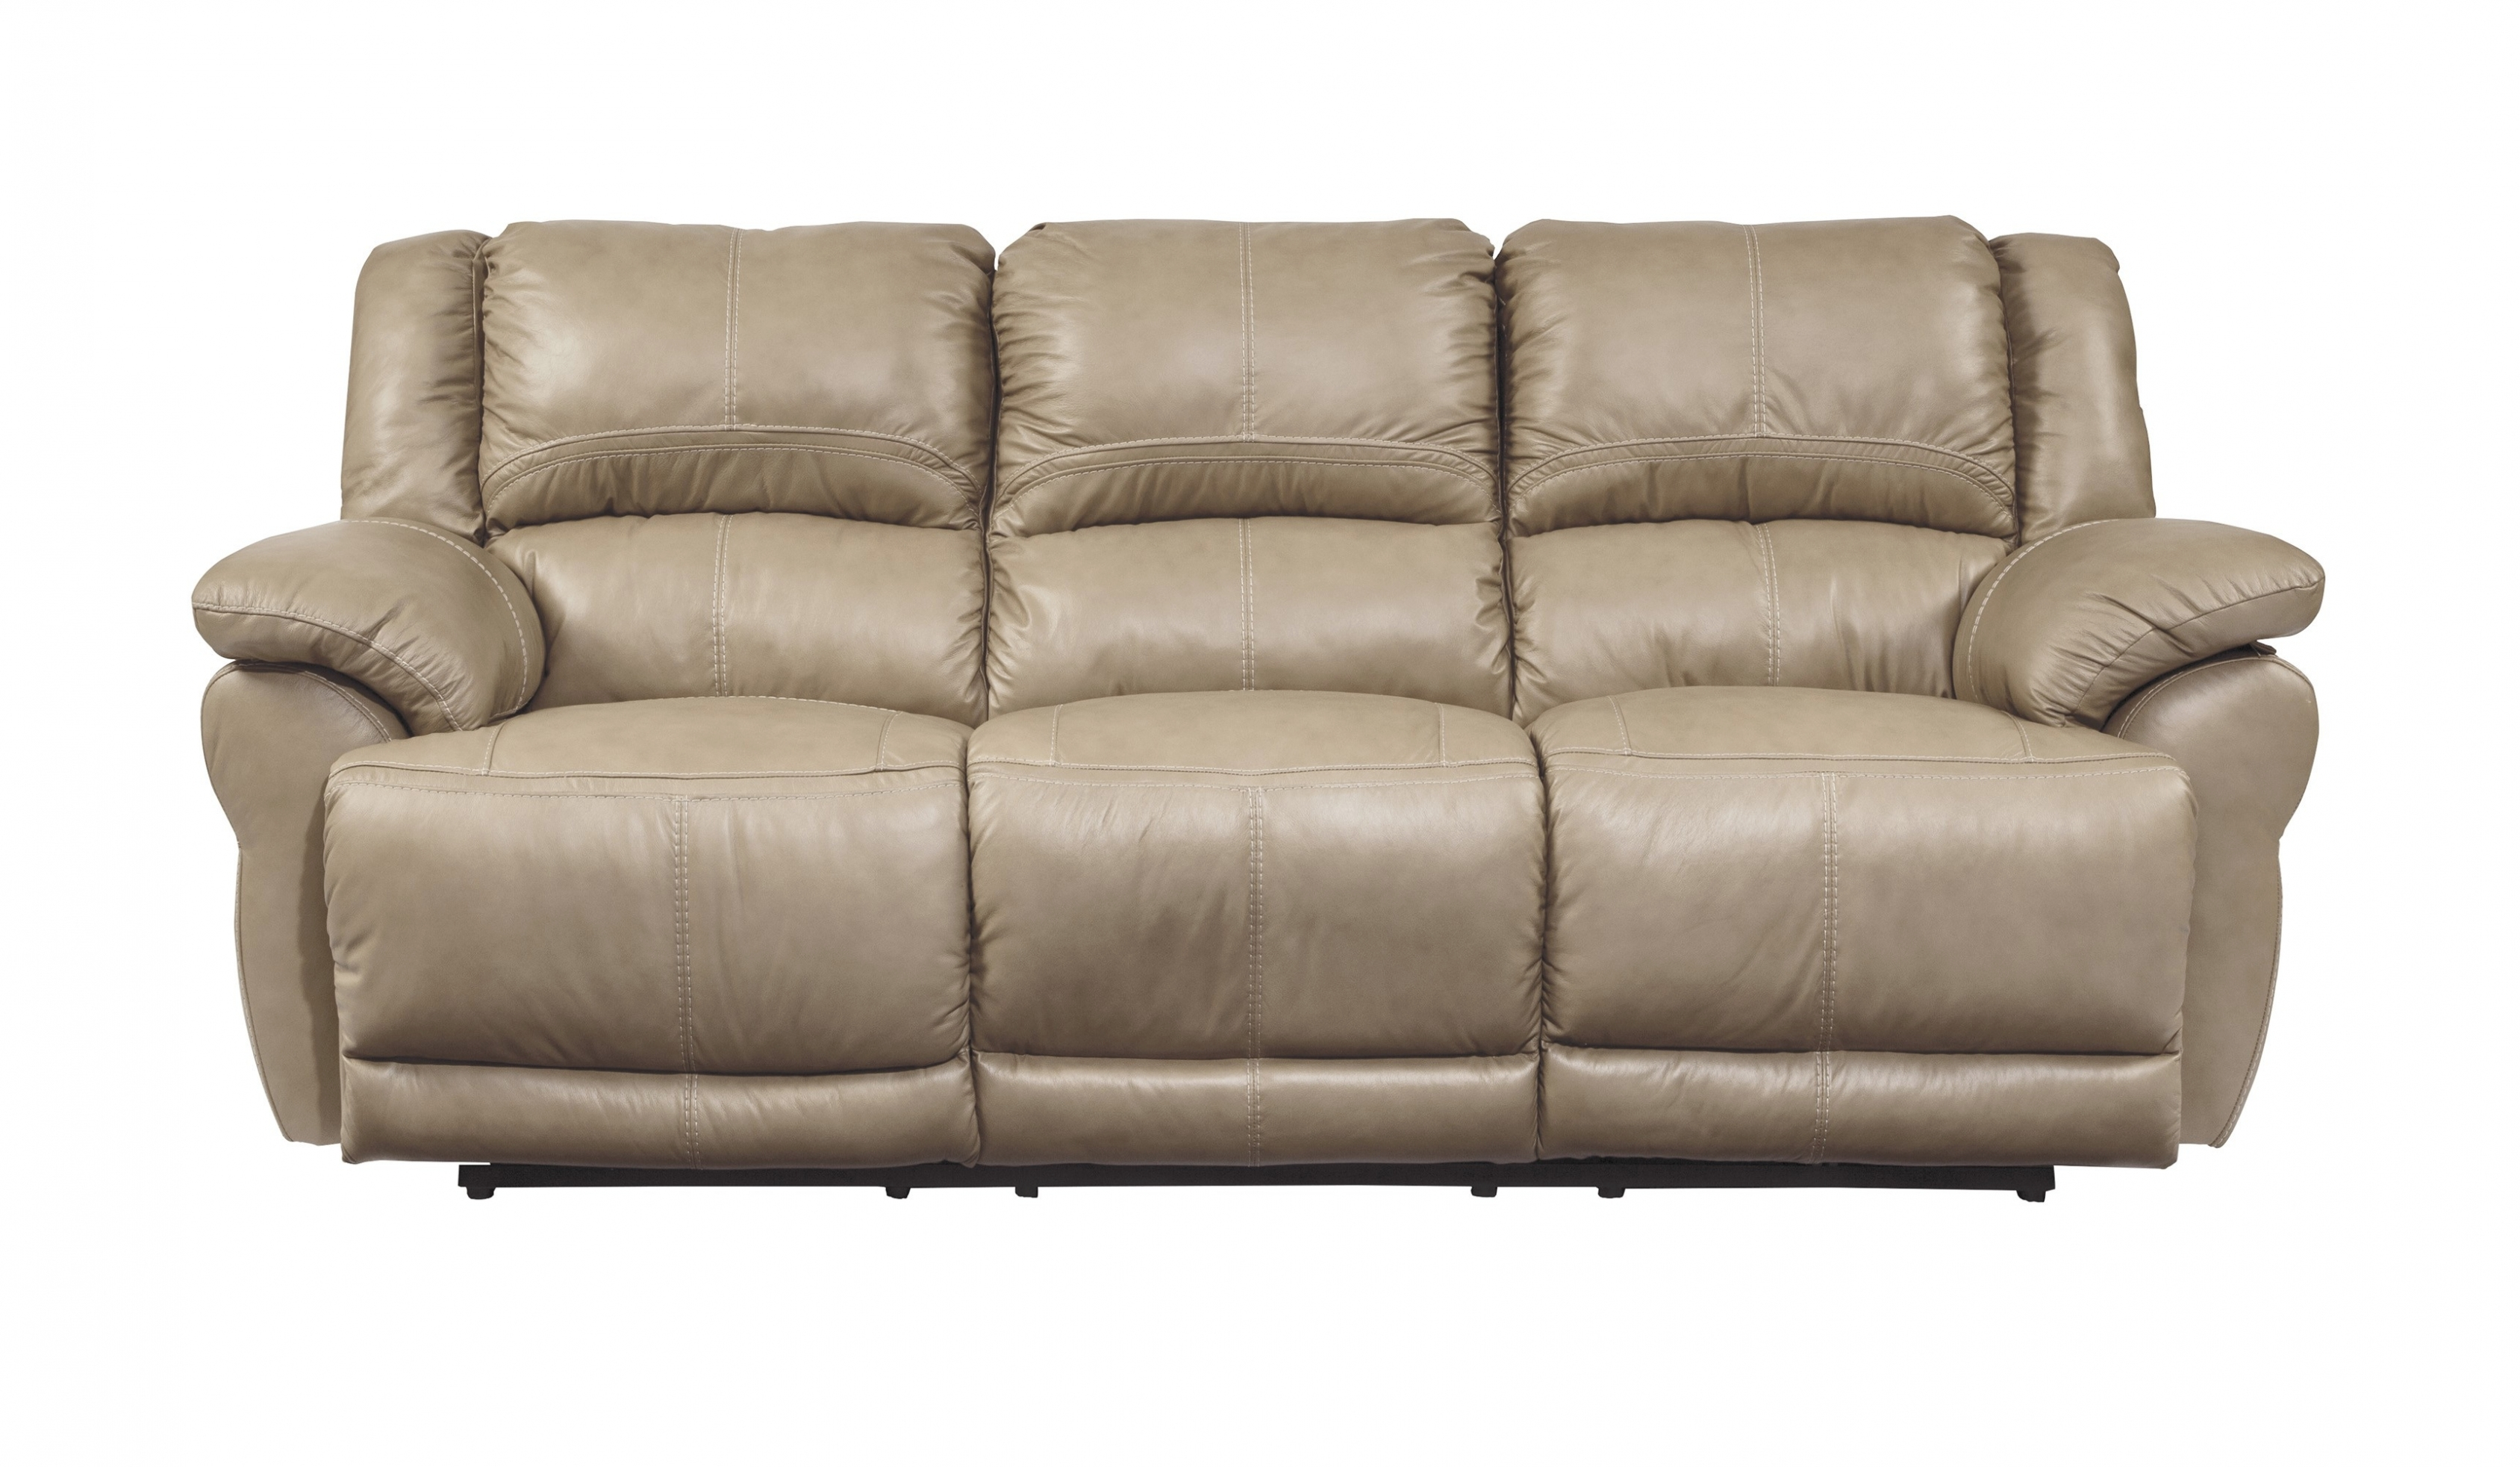 Motorized Sectional Sofa | Home And Textiles Intended For Denali Light Grey 6 Piece Reclining Sectionals With 2 Power Headrests (View 13 of 25)